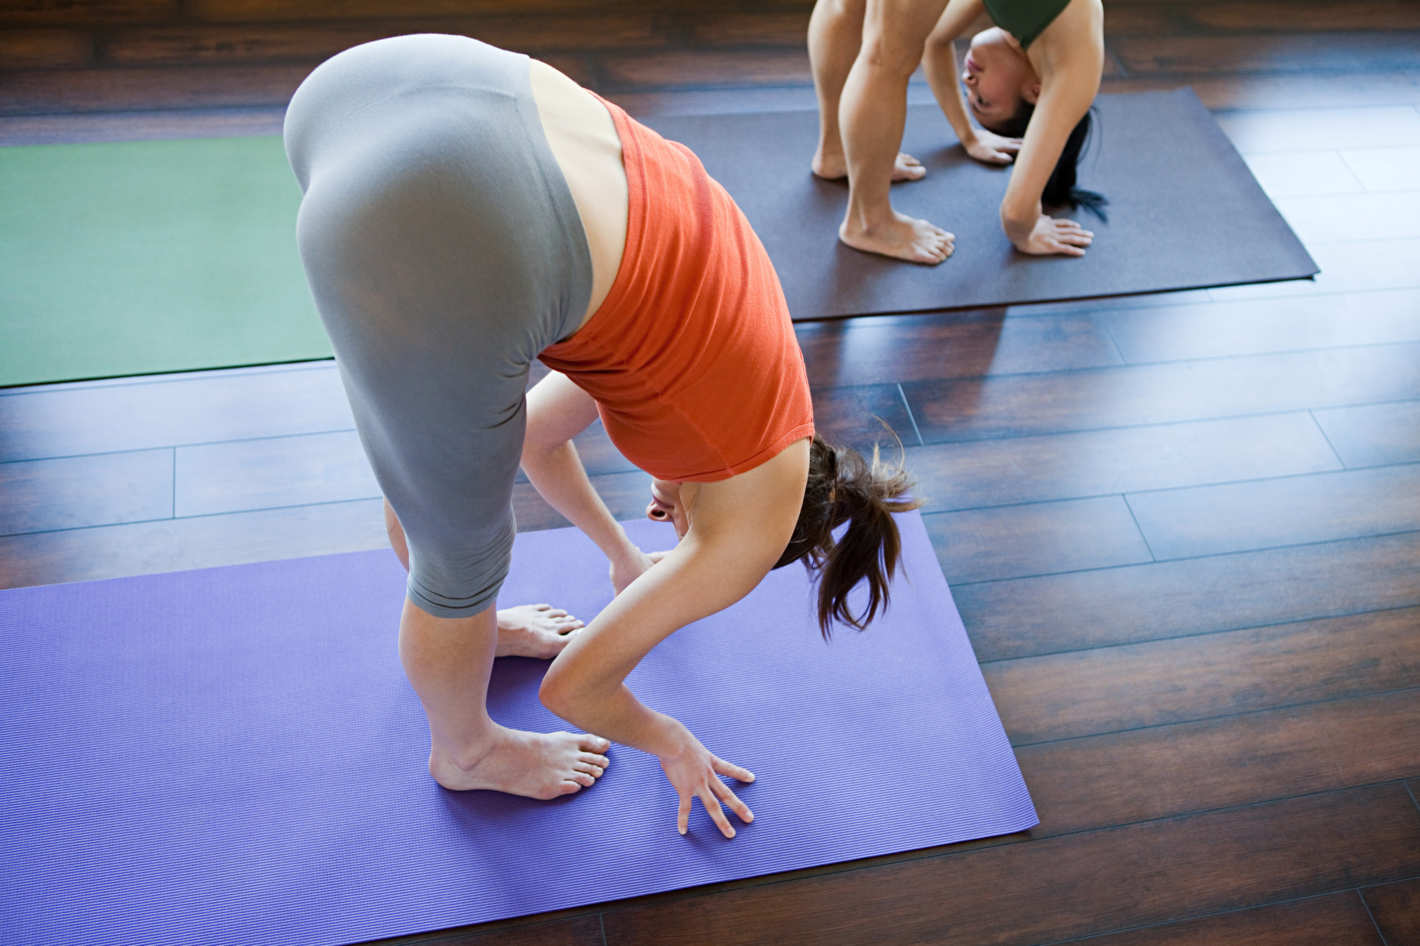 young-naturist-yoga-booty-rear-positions-amateur-deep